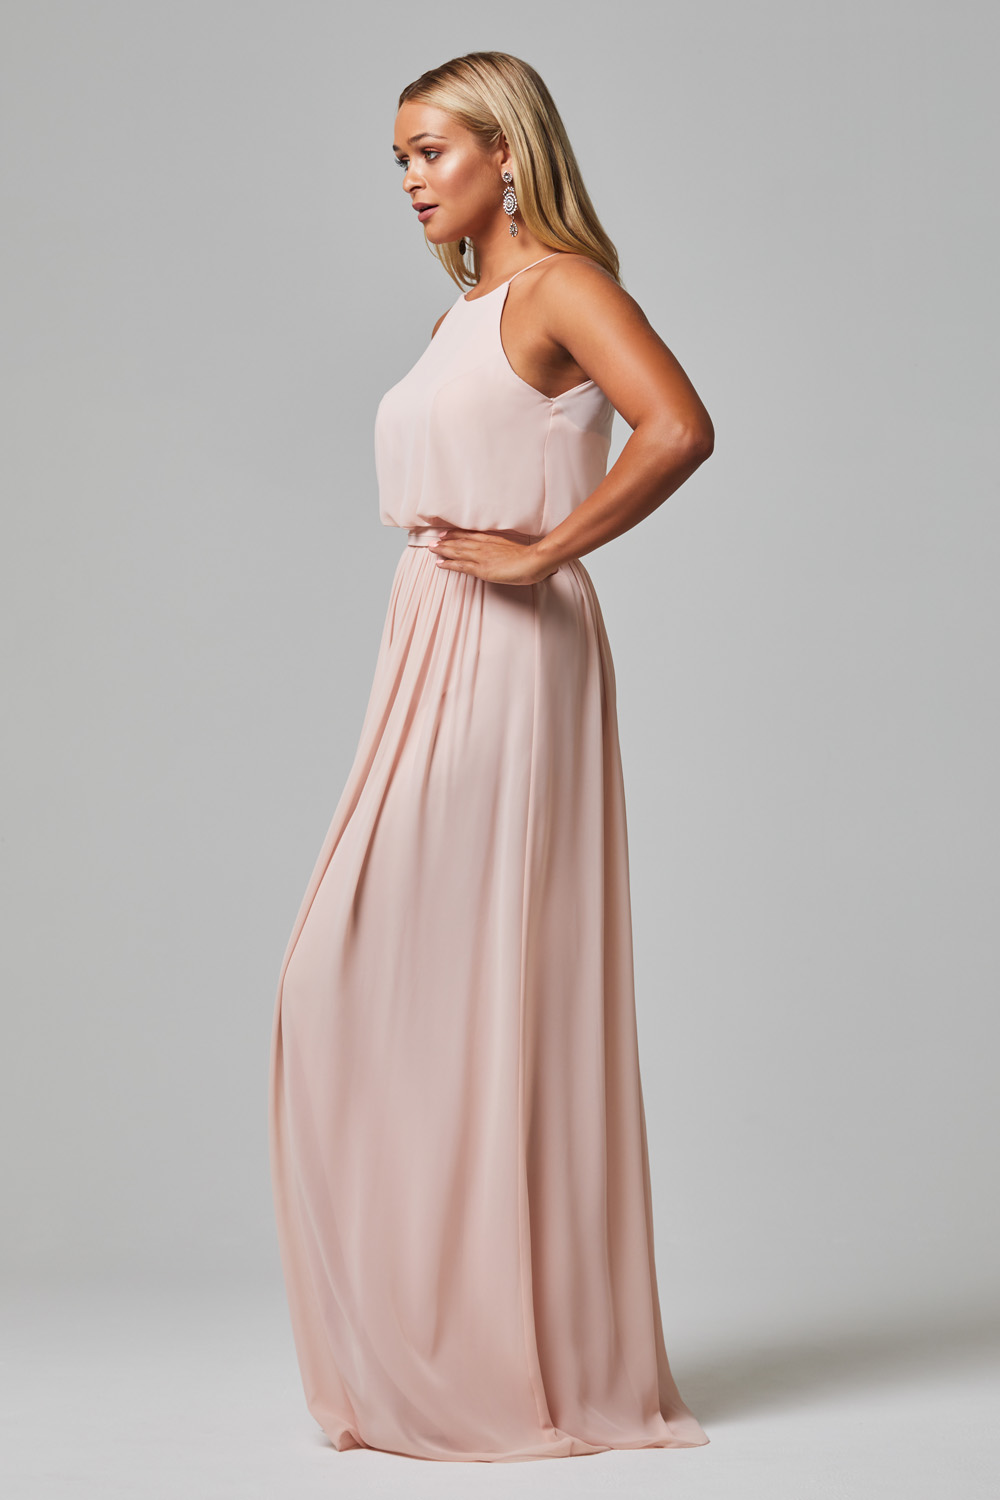 TO822-SYLVIA-PINK-SIDE